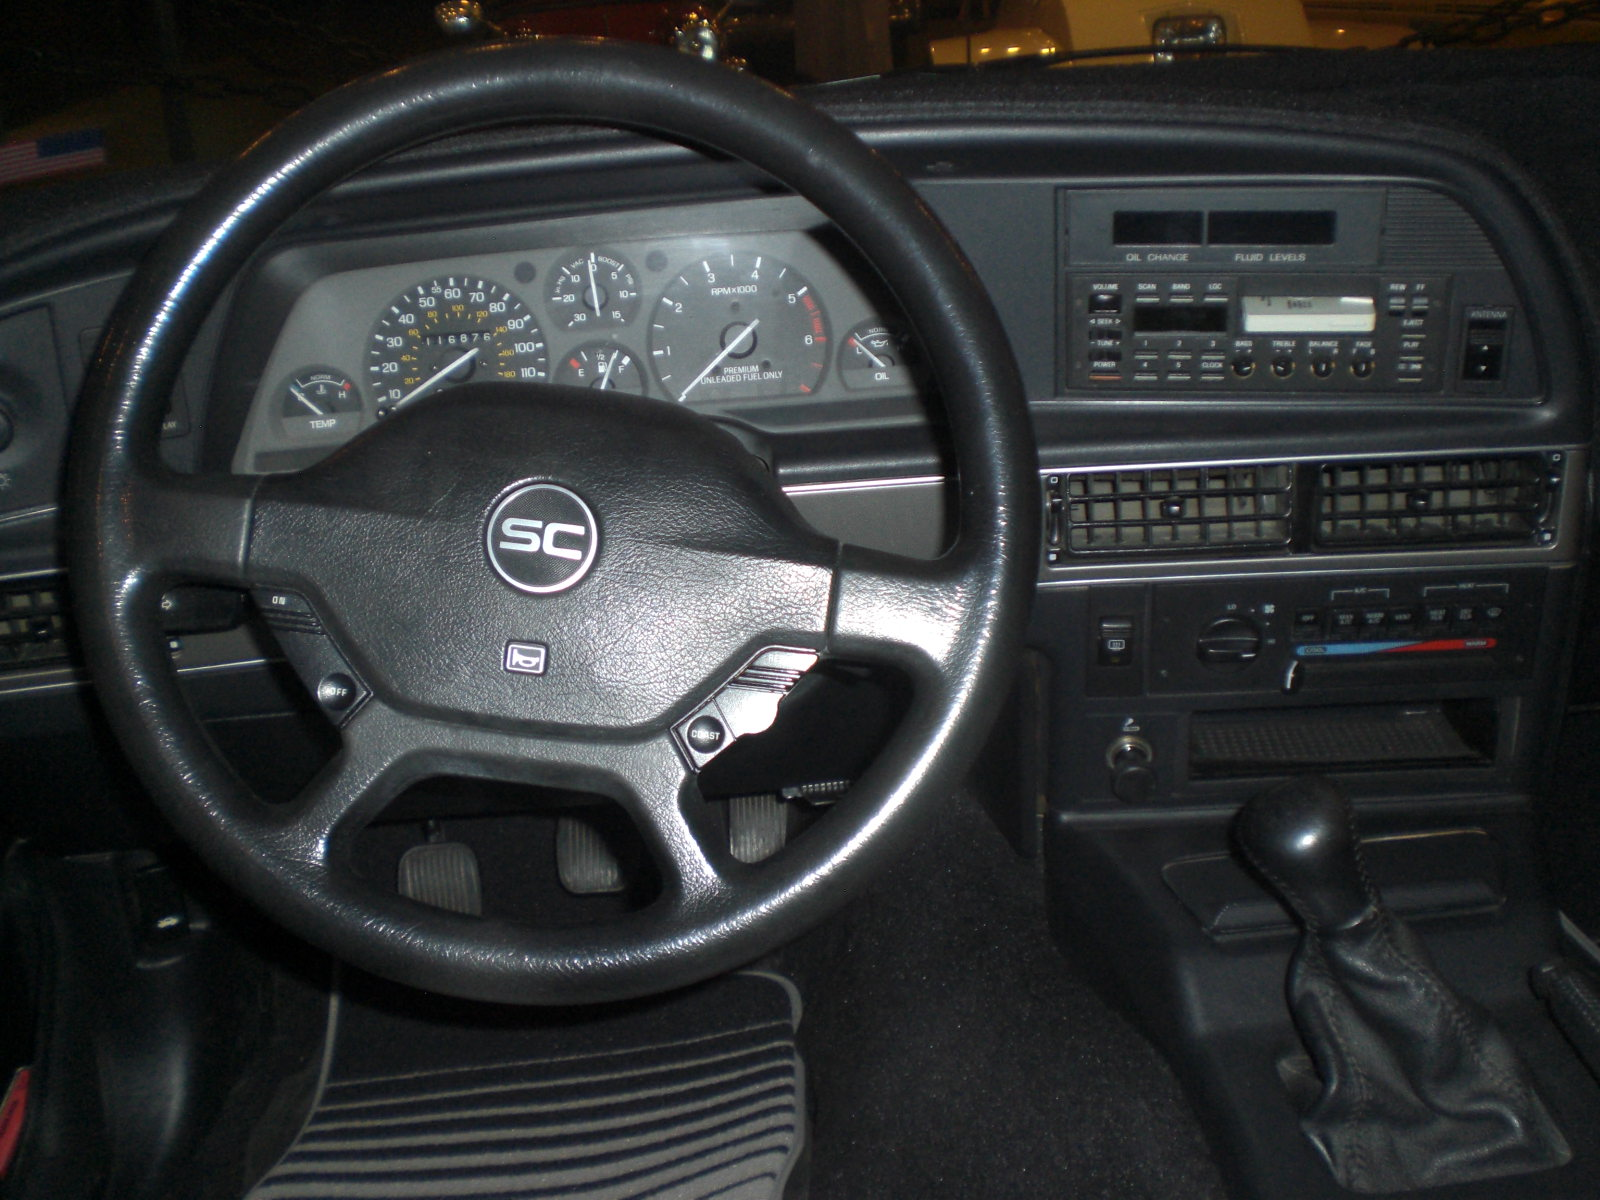 ford drive in html with 6833 1990 Ford Thunderbird 12 on 1501 2010 Ford Shelby Gt500 2 further 6833 1990 Ford Thunderbird 12 besides 3997 2002 Ford Explorer Sport 6 furthermore 5459 1996 Ford Thunderbird 6 likewise 6137 1993 Ford Taurus 7.